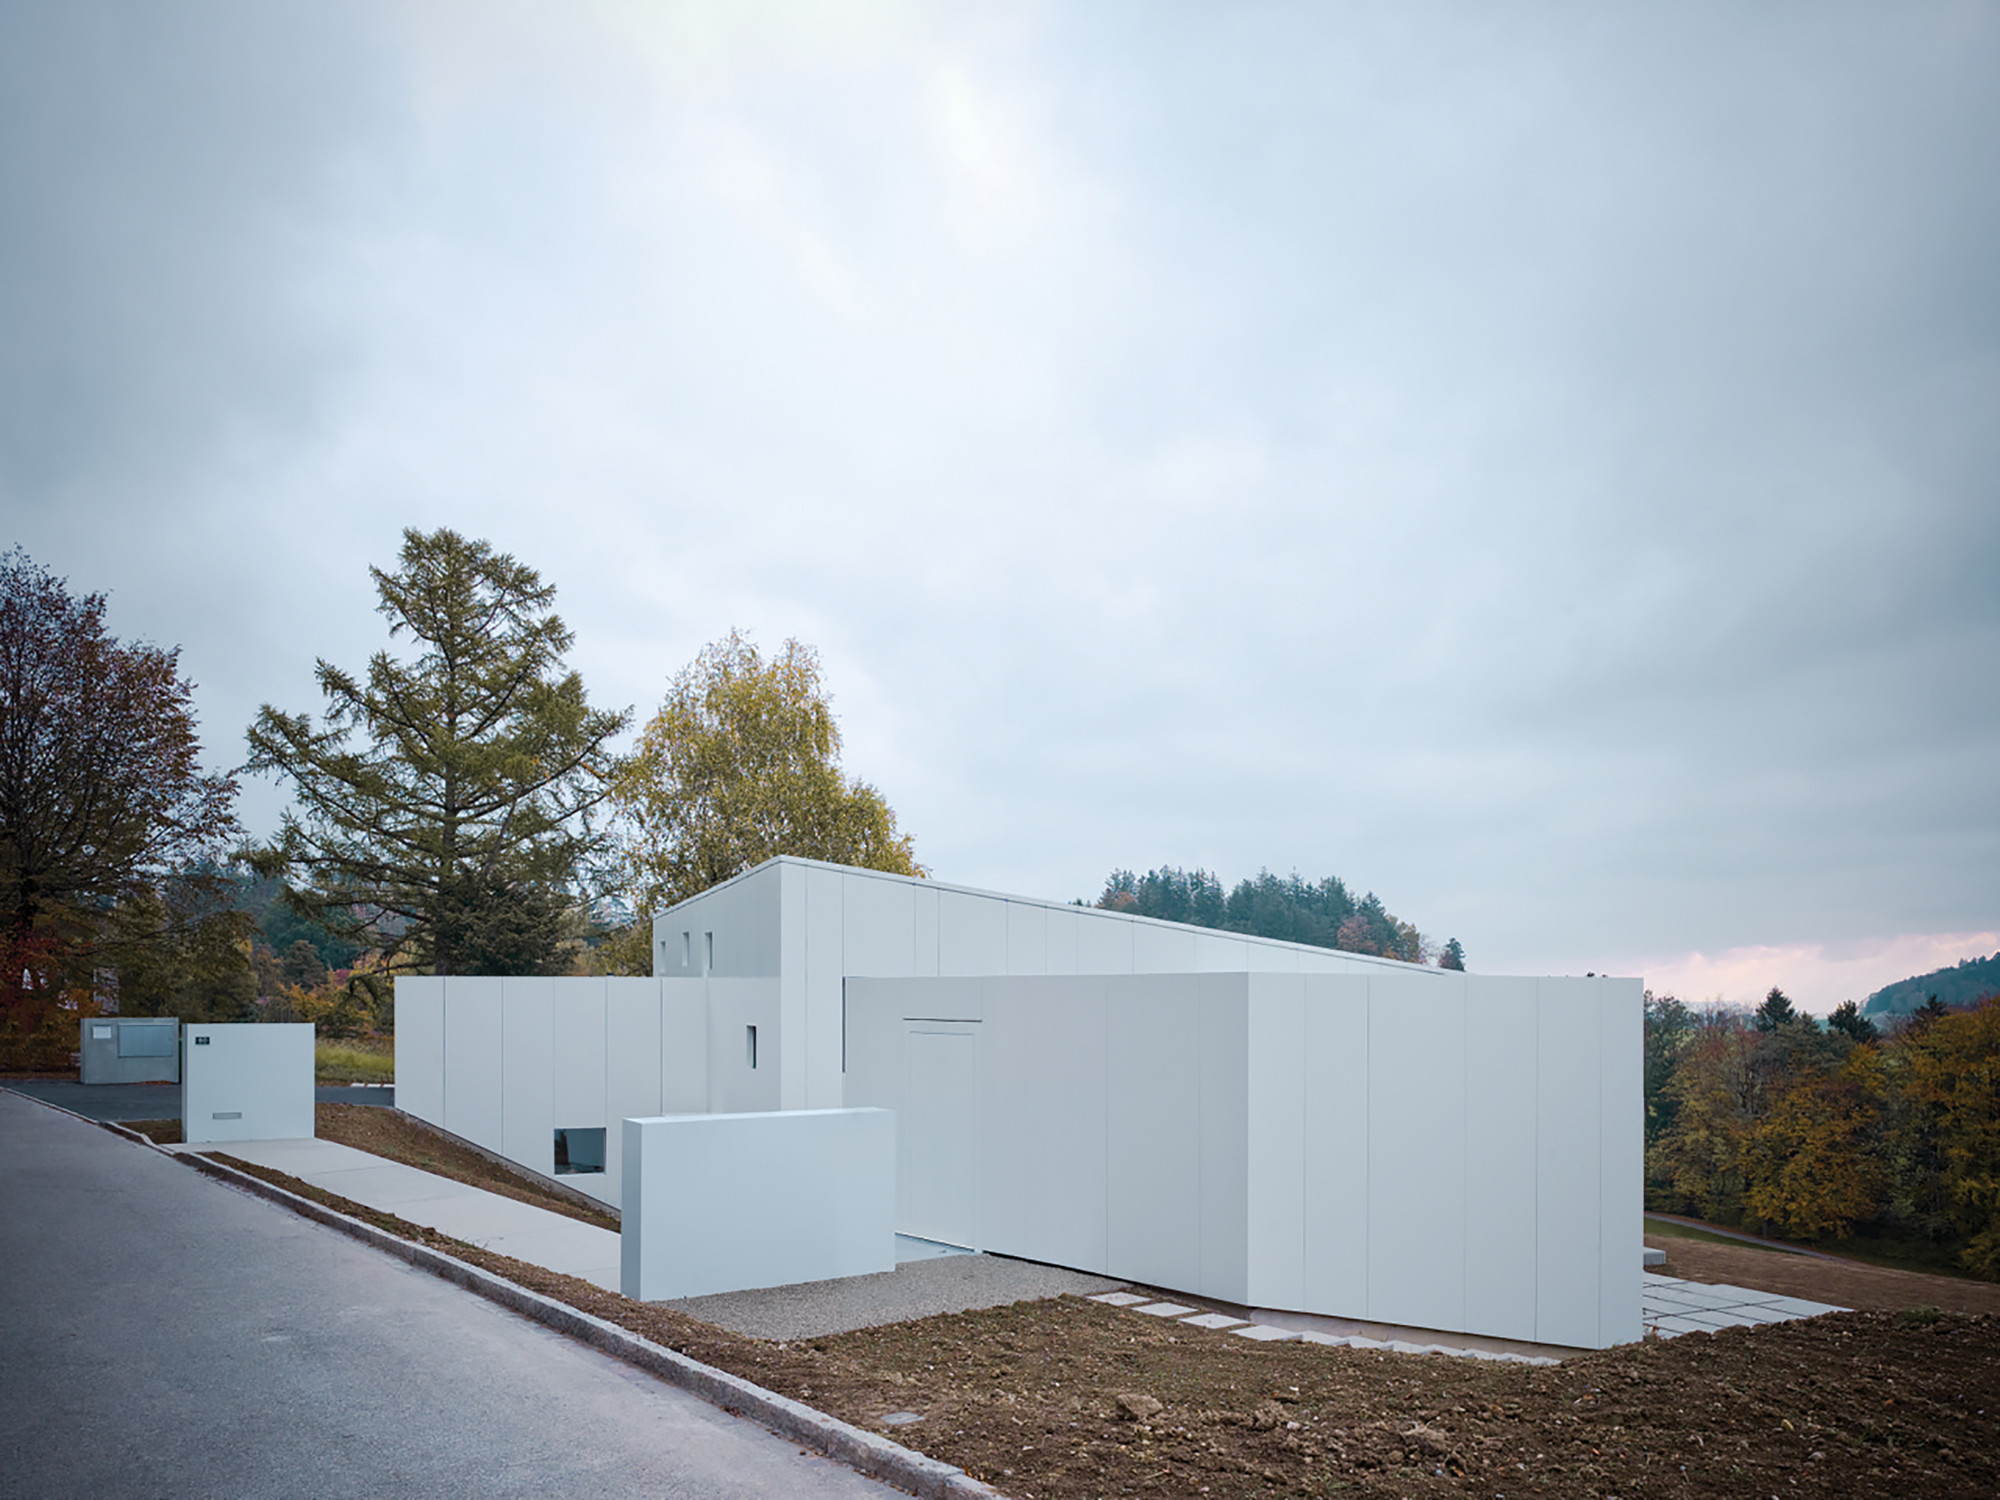 Country House / E2A, © Dominique Marc Wehrli